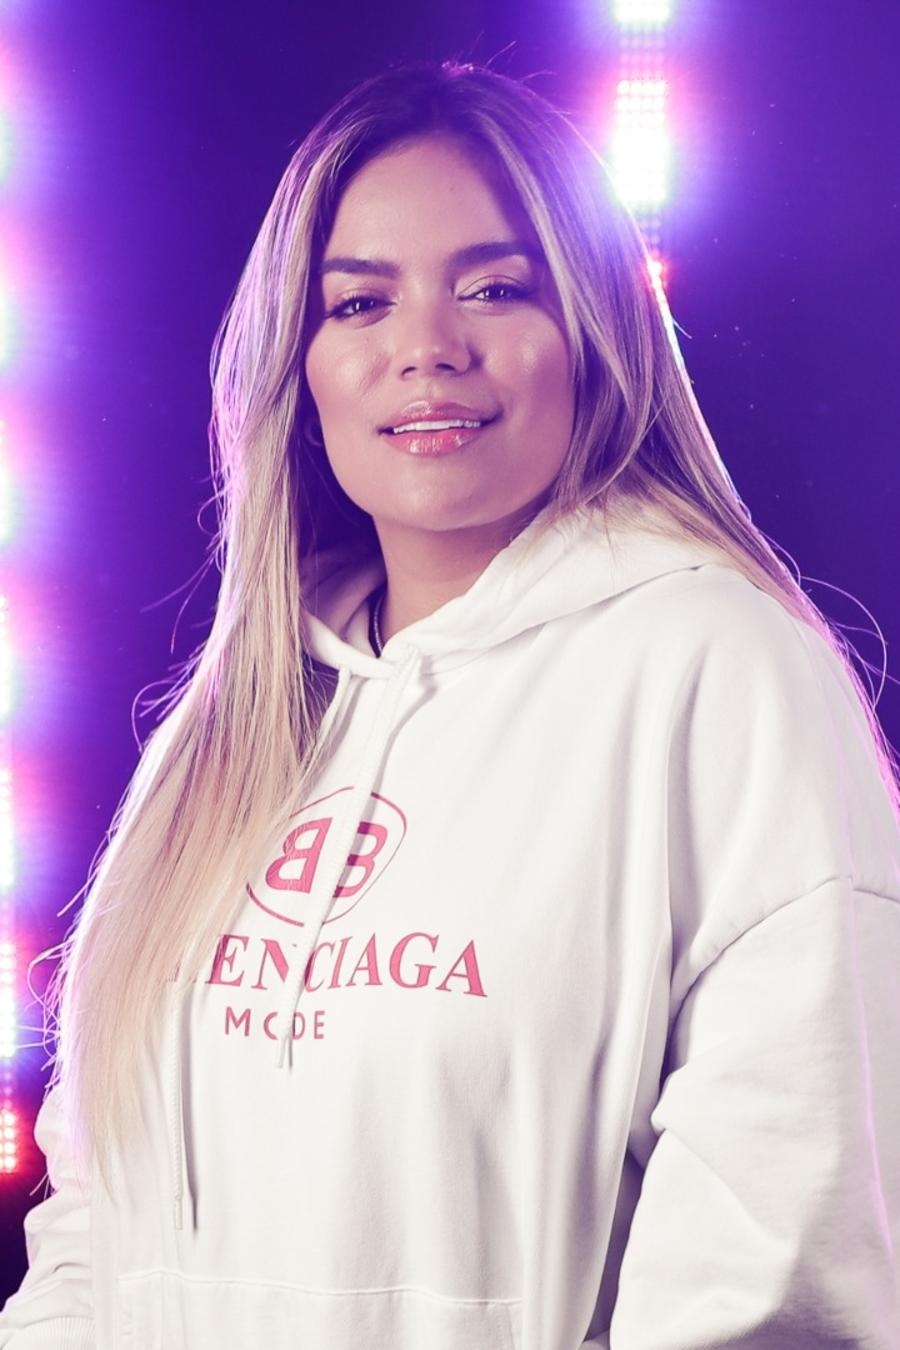 Karol G wearing a white hoodie and posing in front of lights